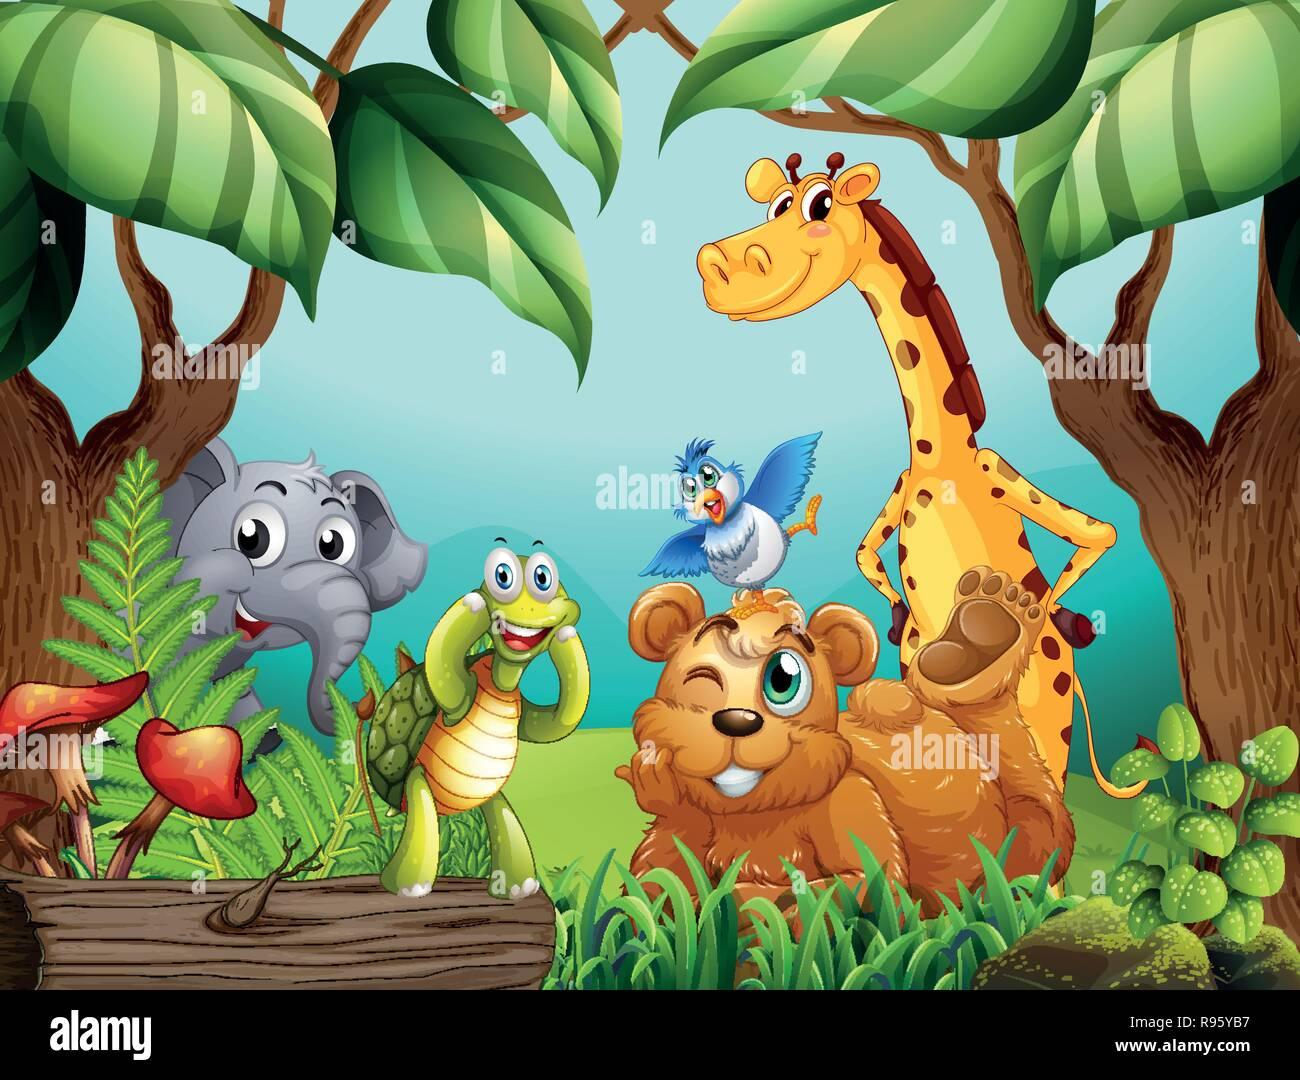 Wild animals in nature illustration - Stock Image